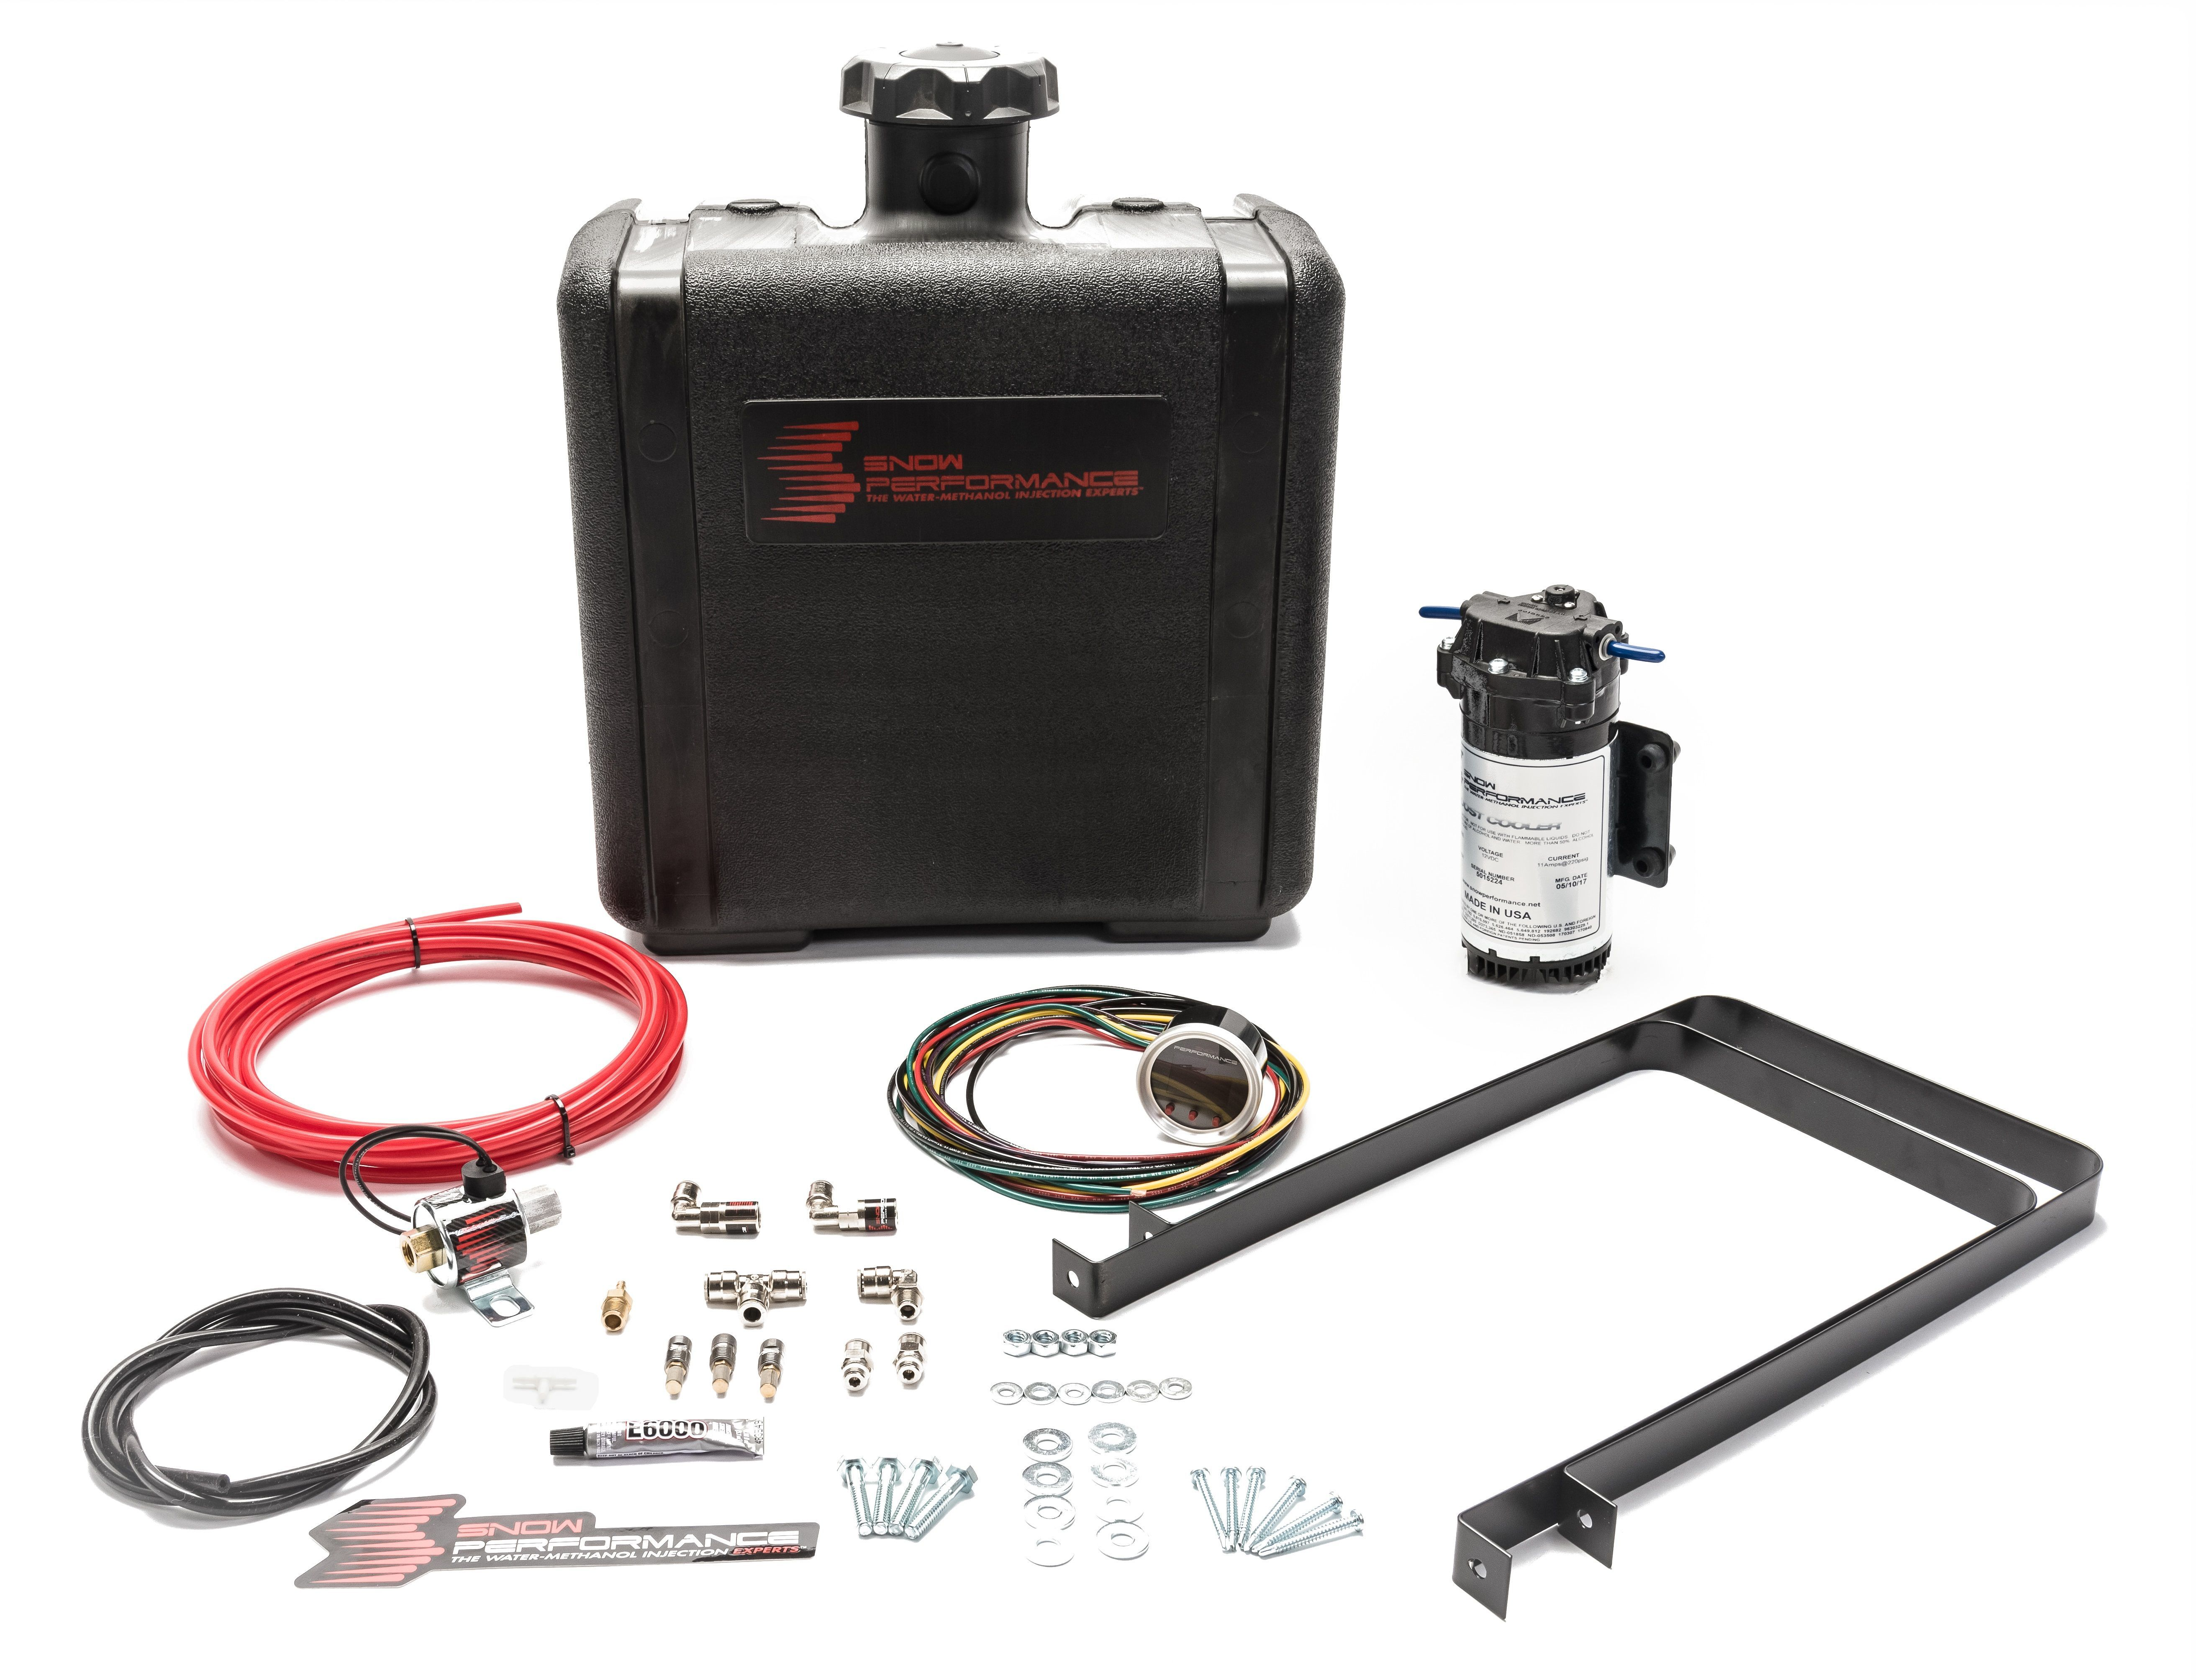 Snow Performance 450 Water Injection System, Stage 2 Boost Cooler, Progressive Controlled, 3 qt Reservoir, Universal Diesel, Kit